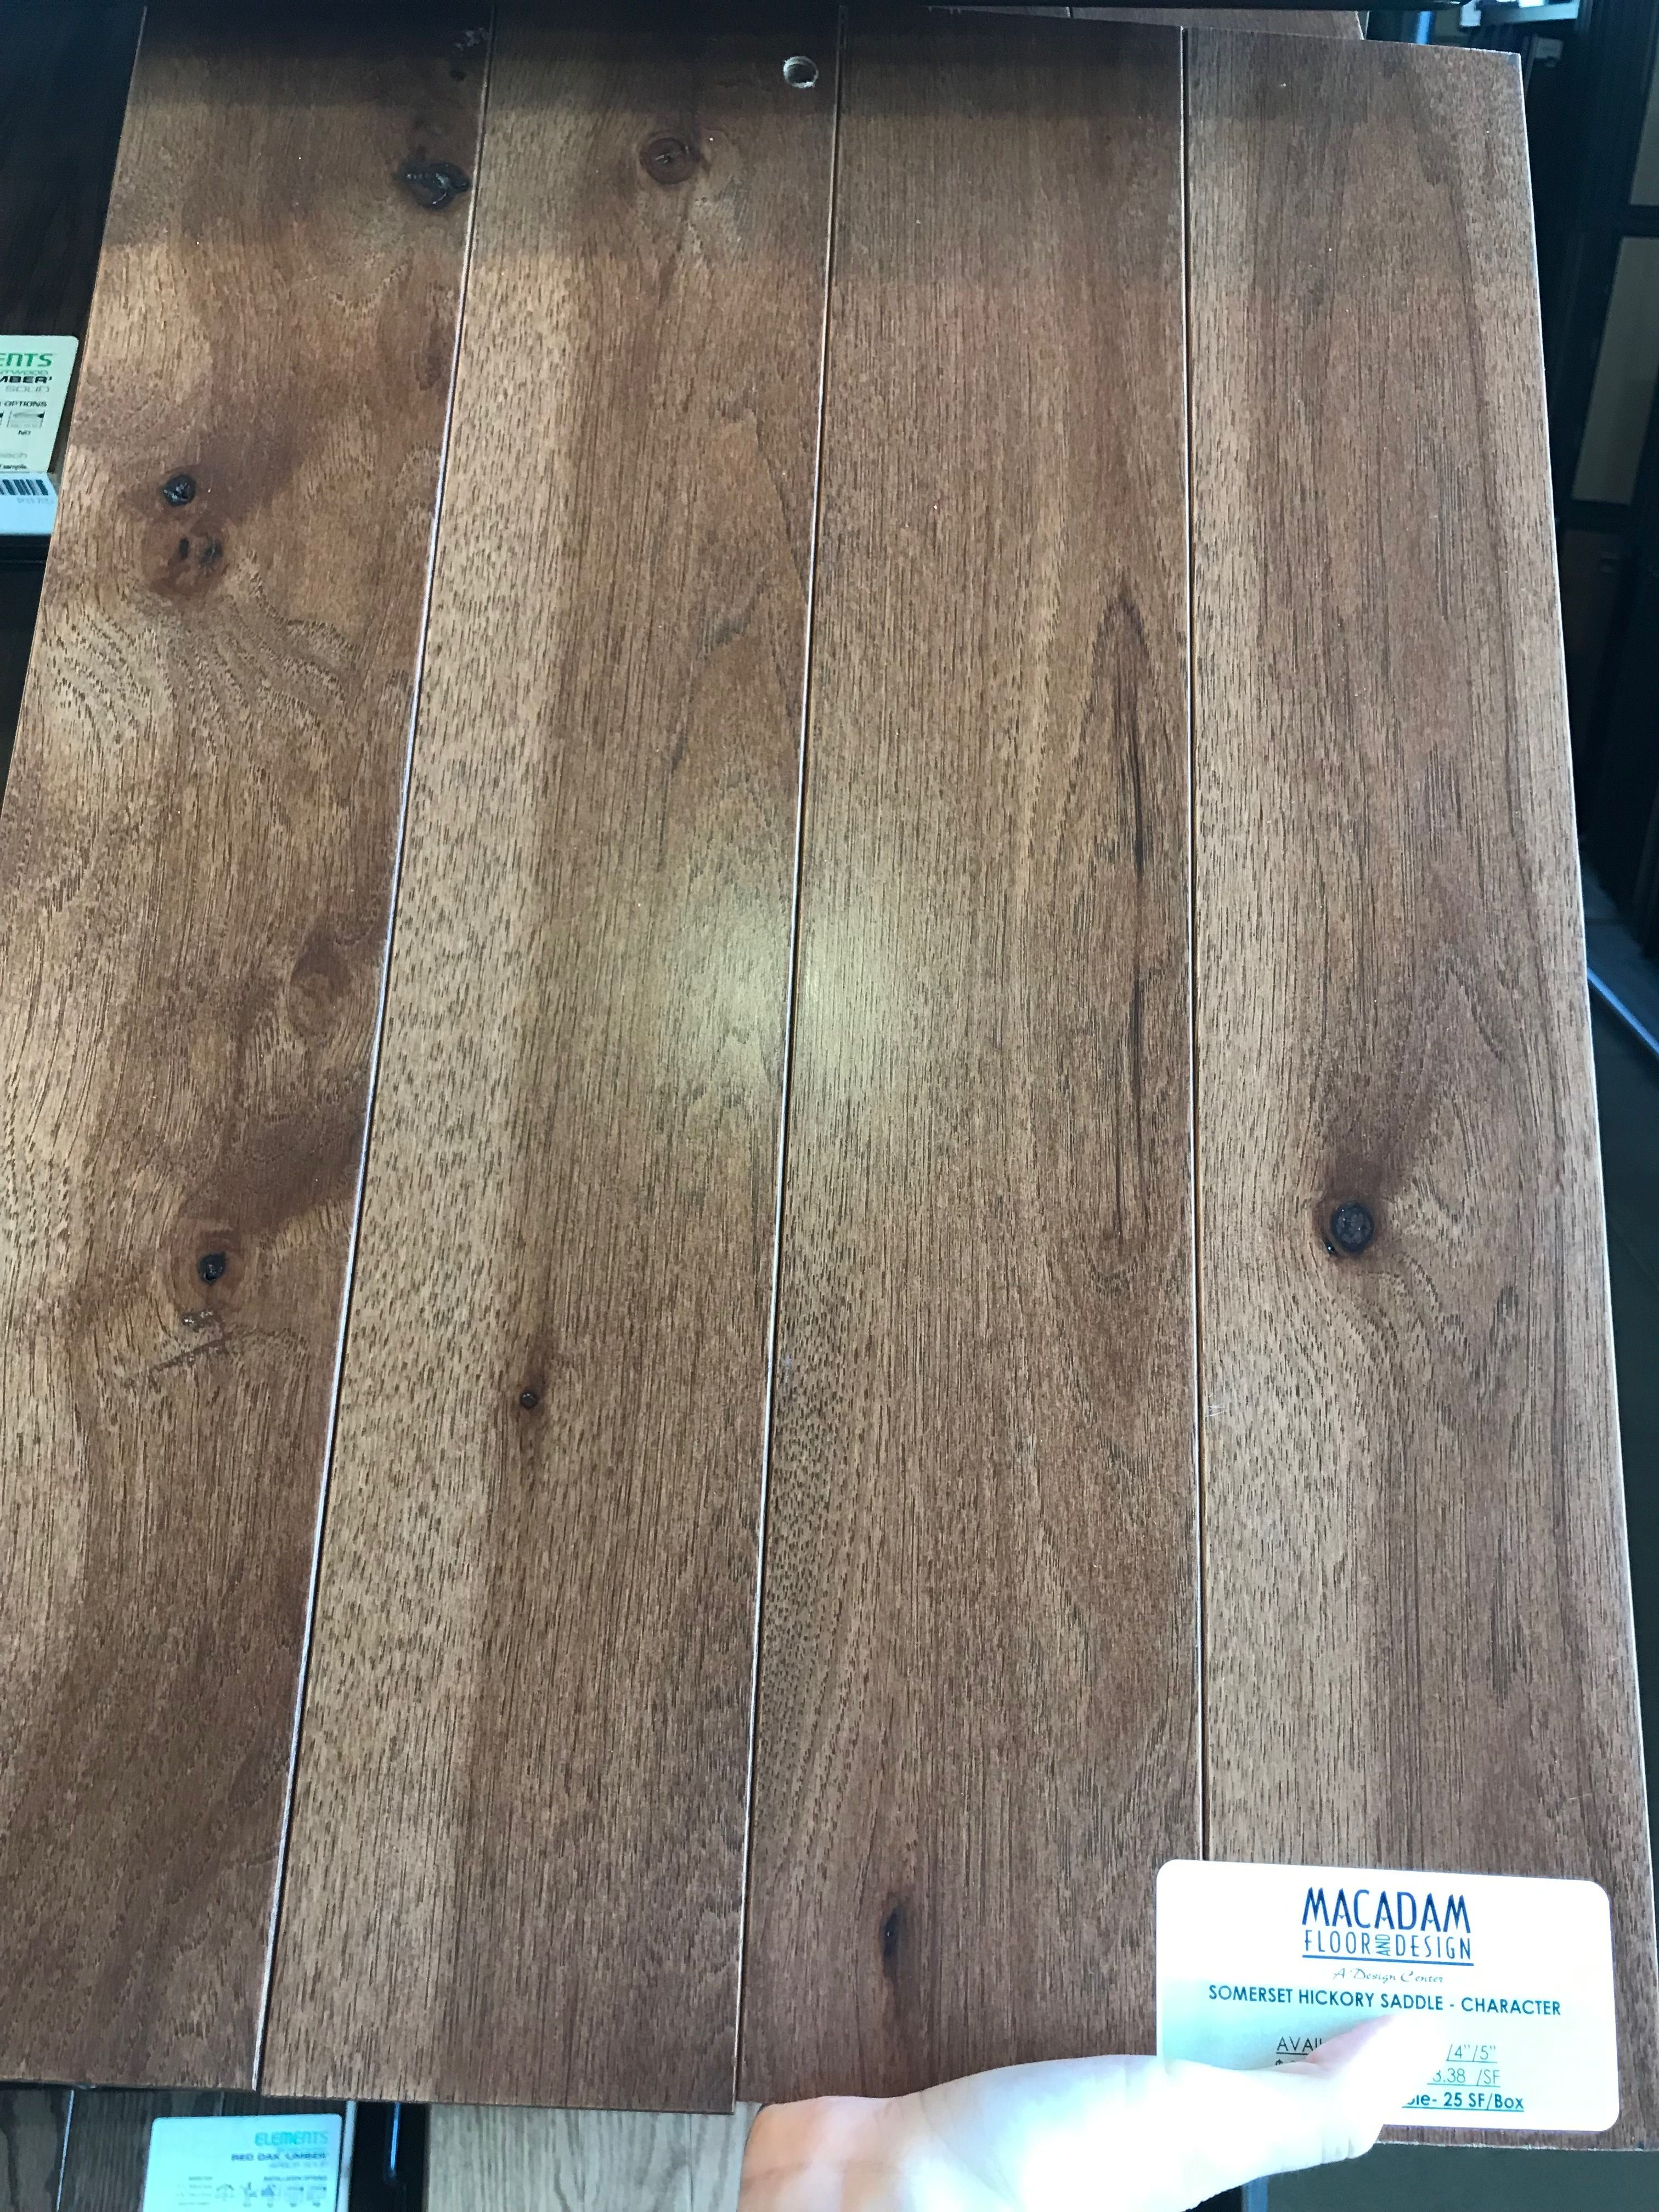 Pin By Sara Fields On Wood Floor Finishes In 2019 Wood Floor